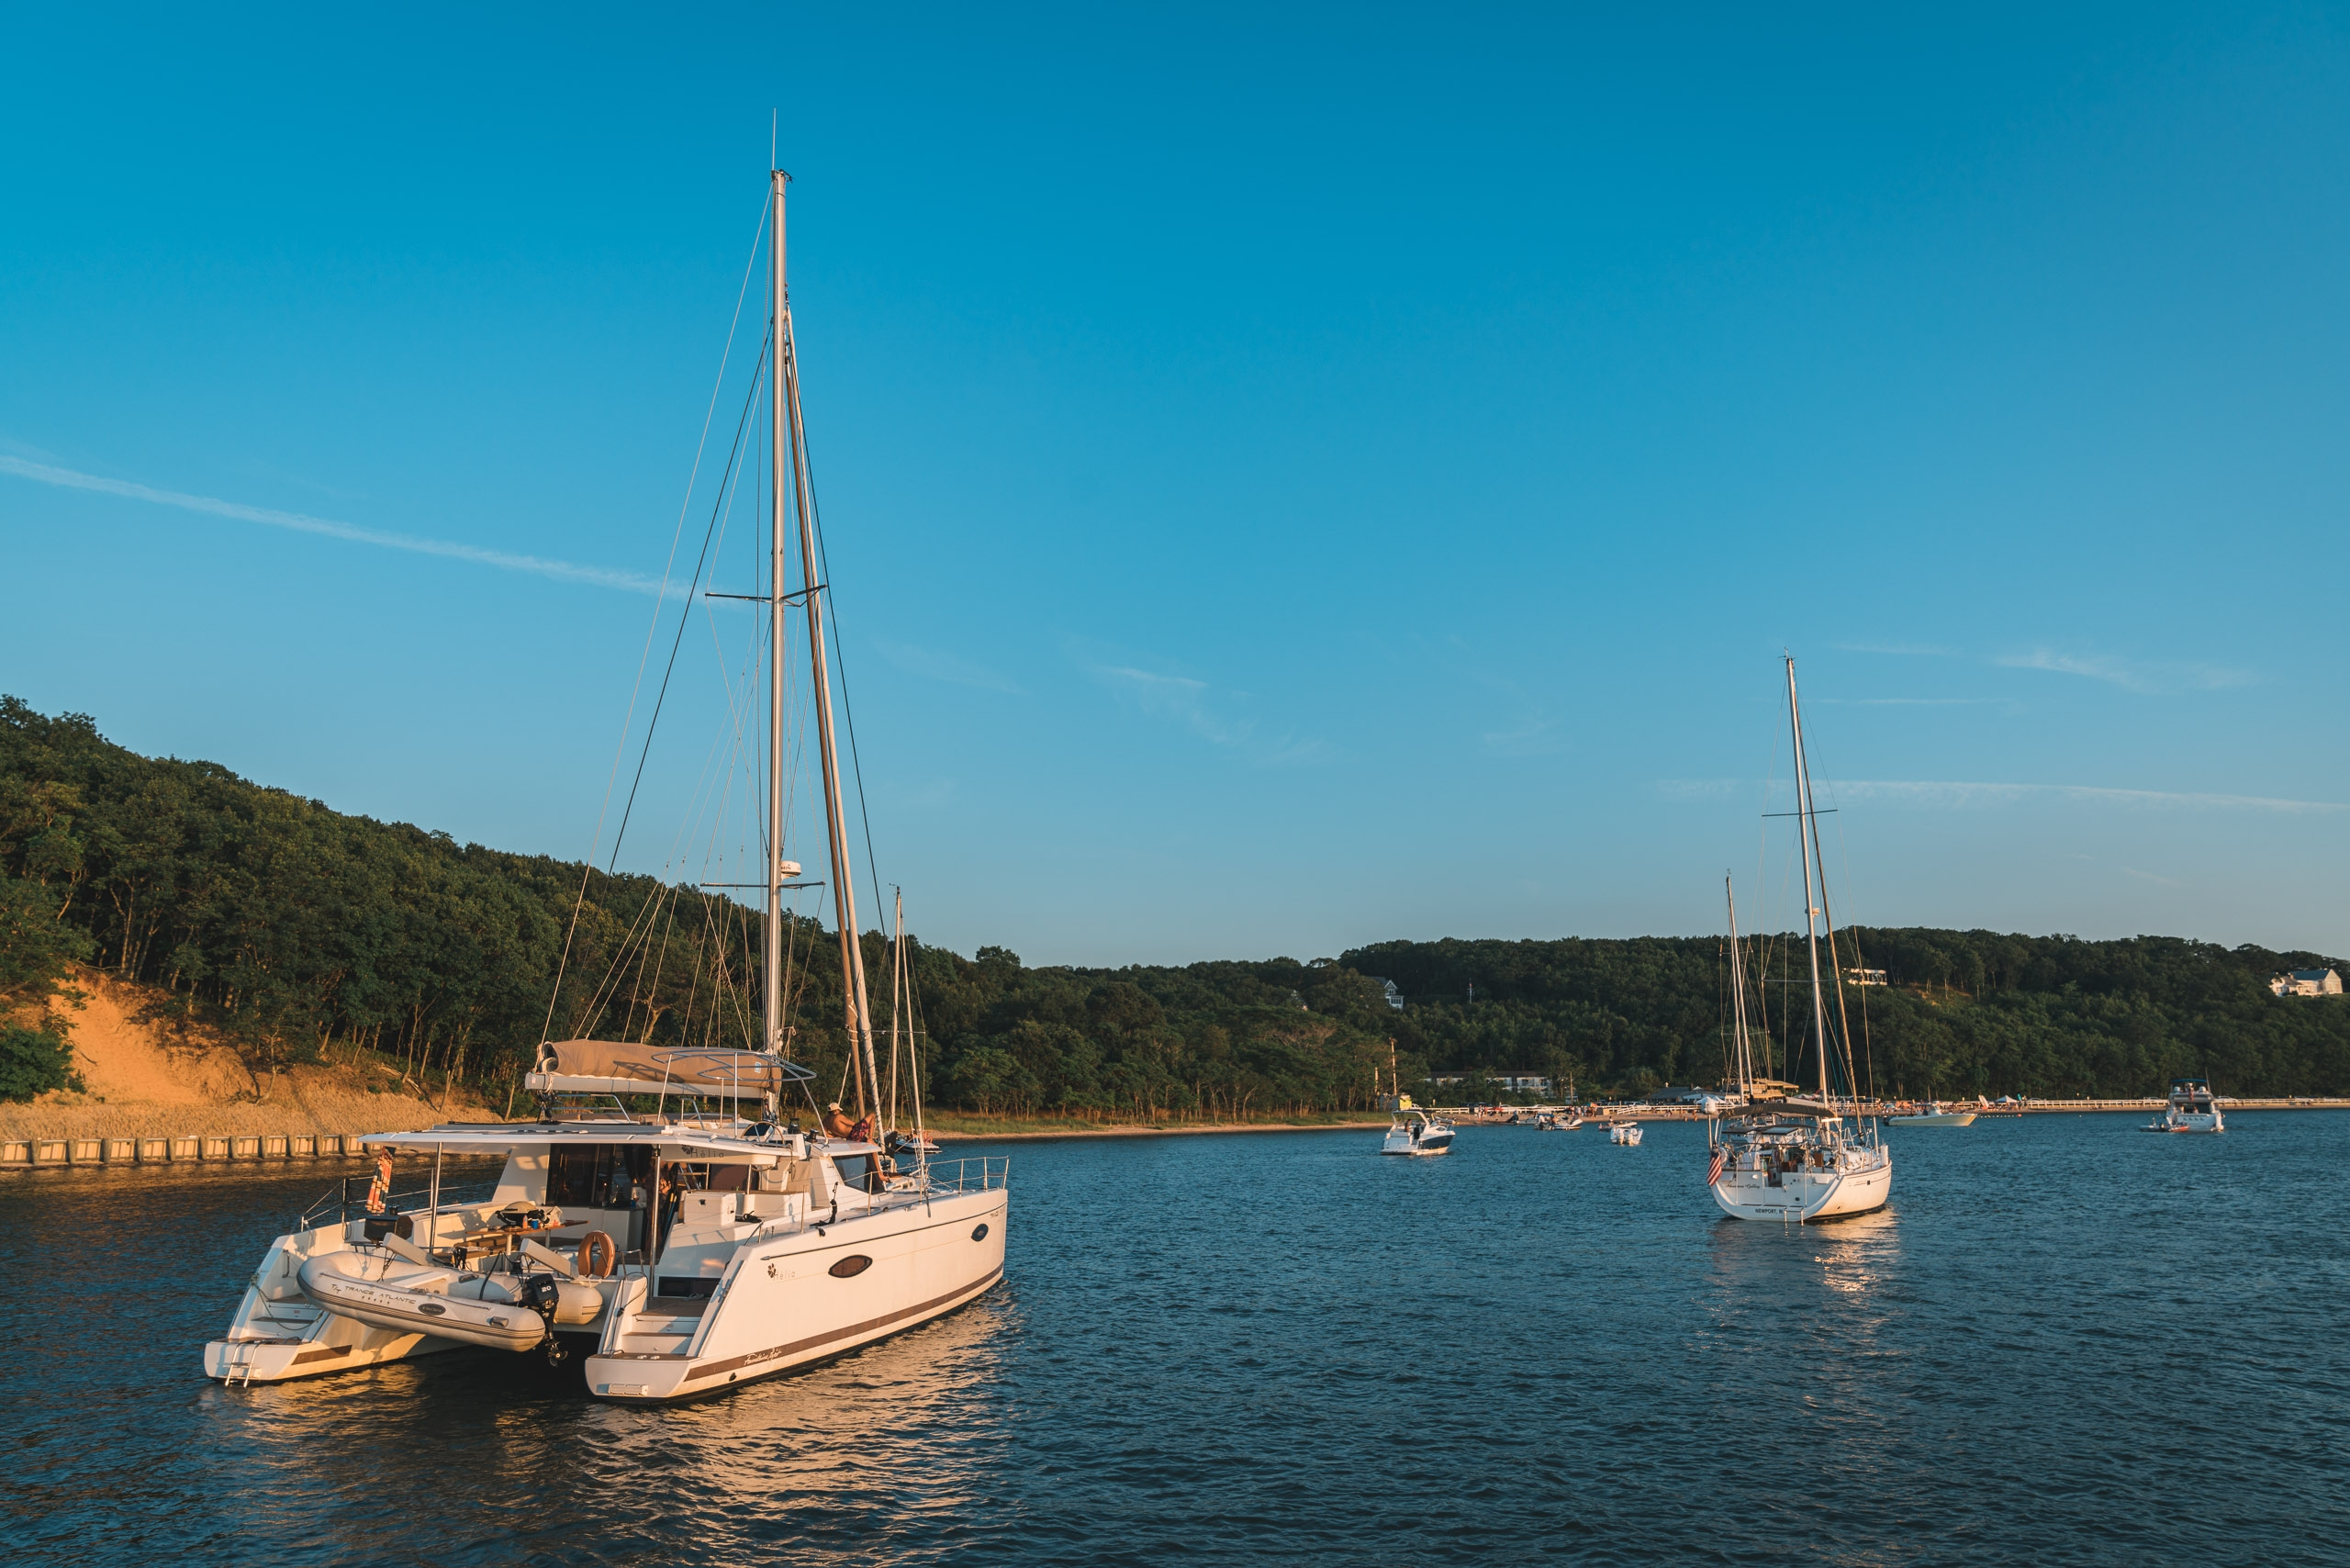 The Boats off Shelter Island